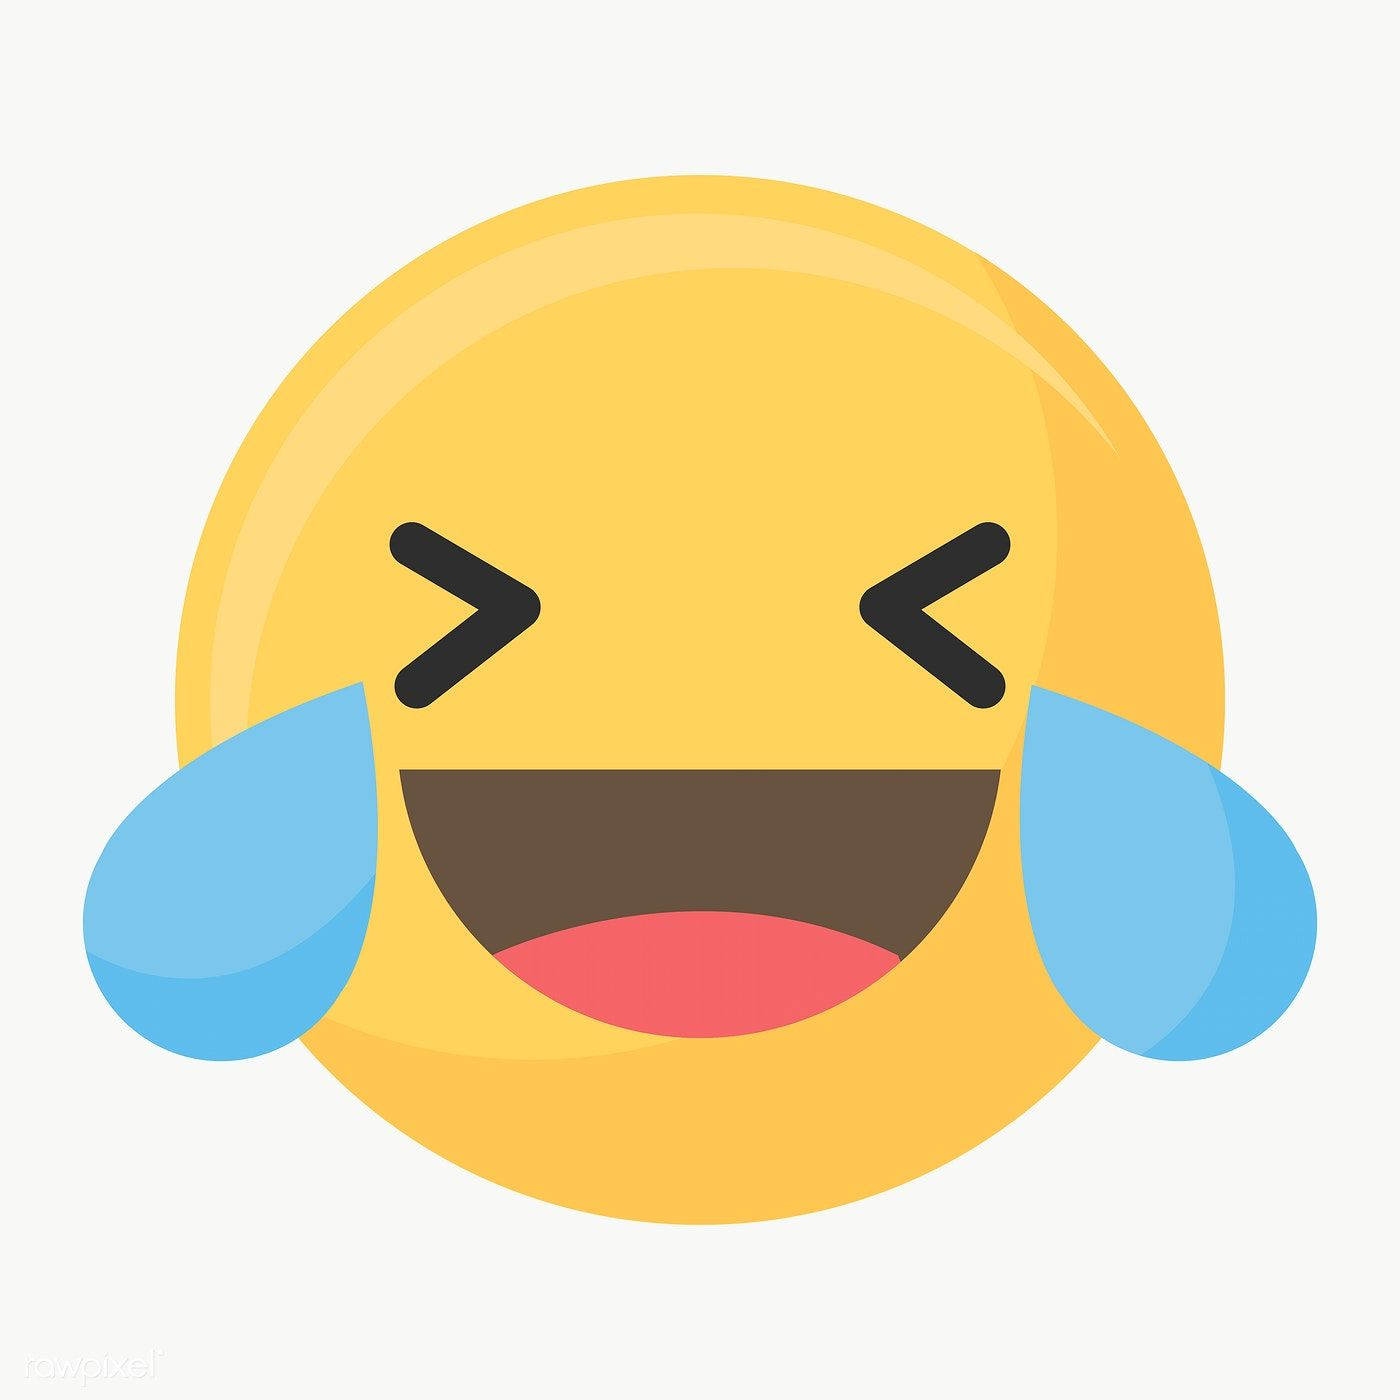 Download Premium Illustration Of Laughing Face Emoticon Symbol